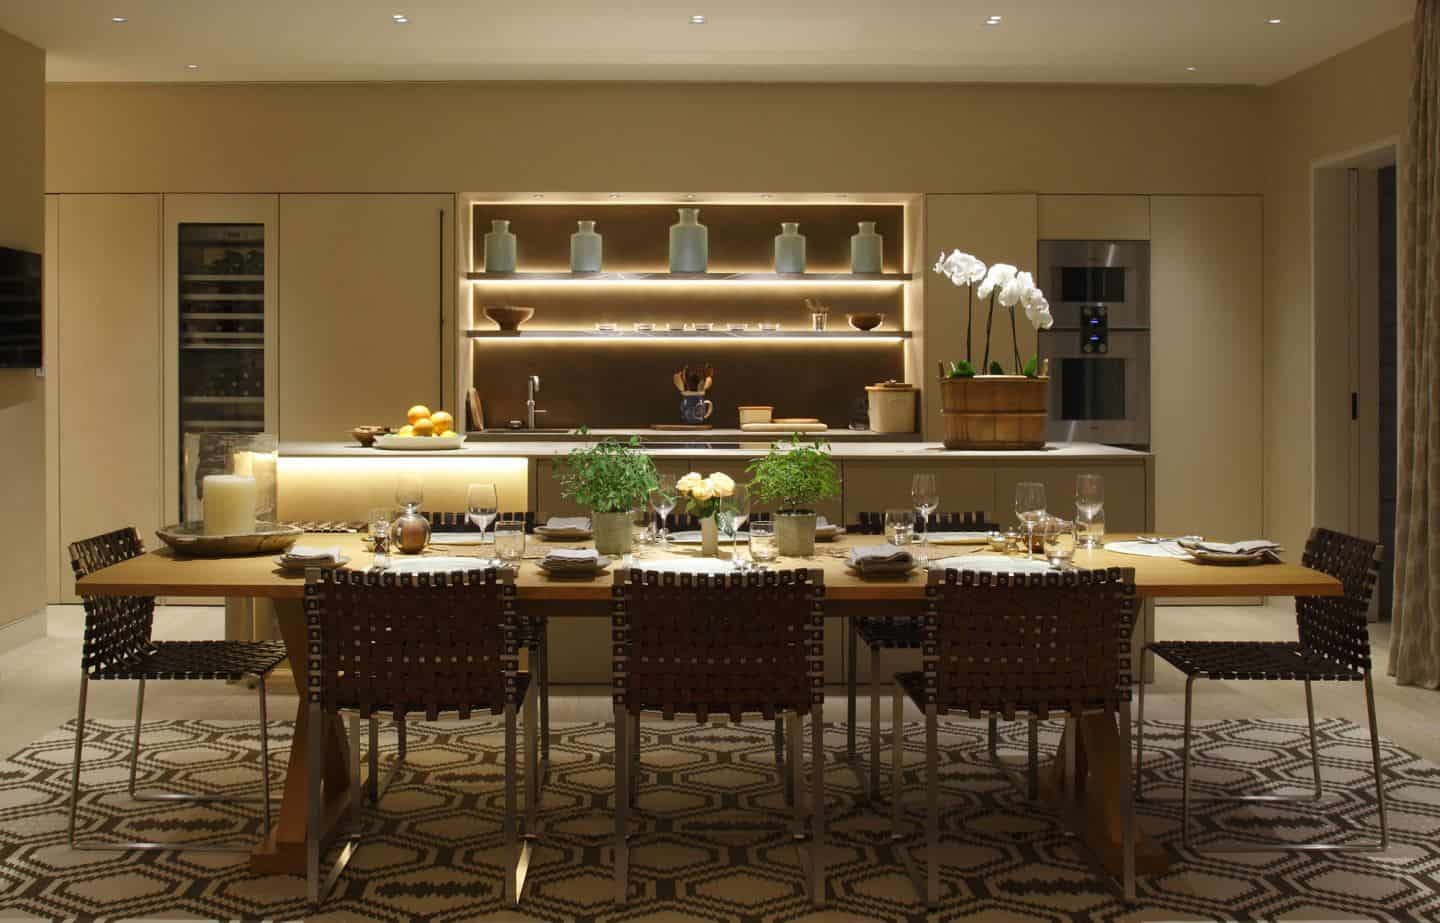 Kitchen design trends - Linear LED lighting in a kitchen/dining room. Lighting by John Cullen Lighting